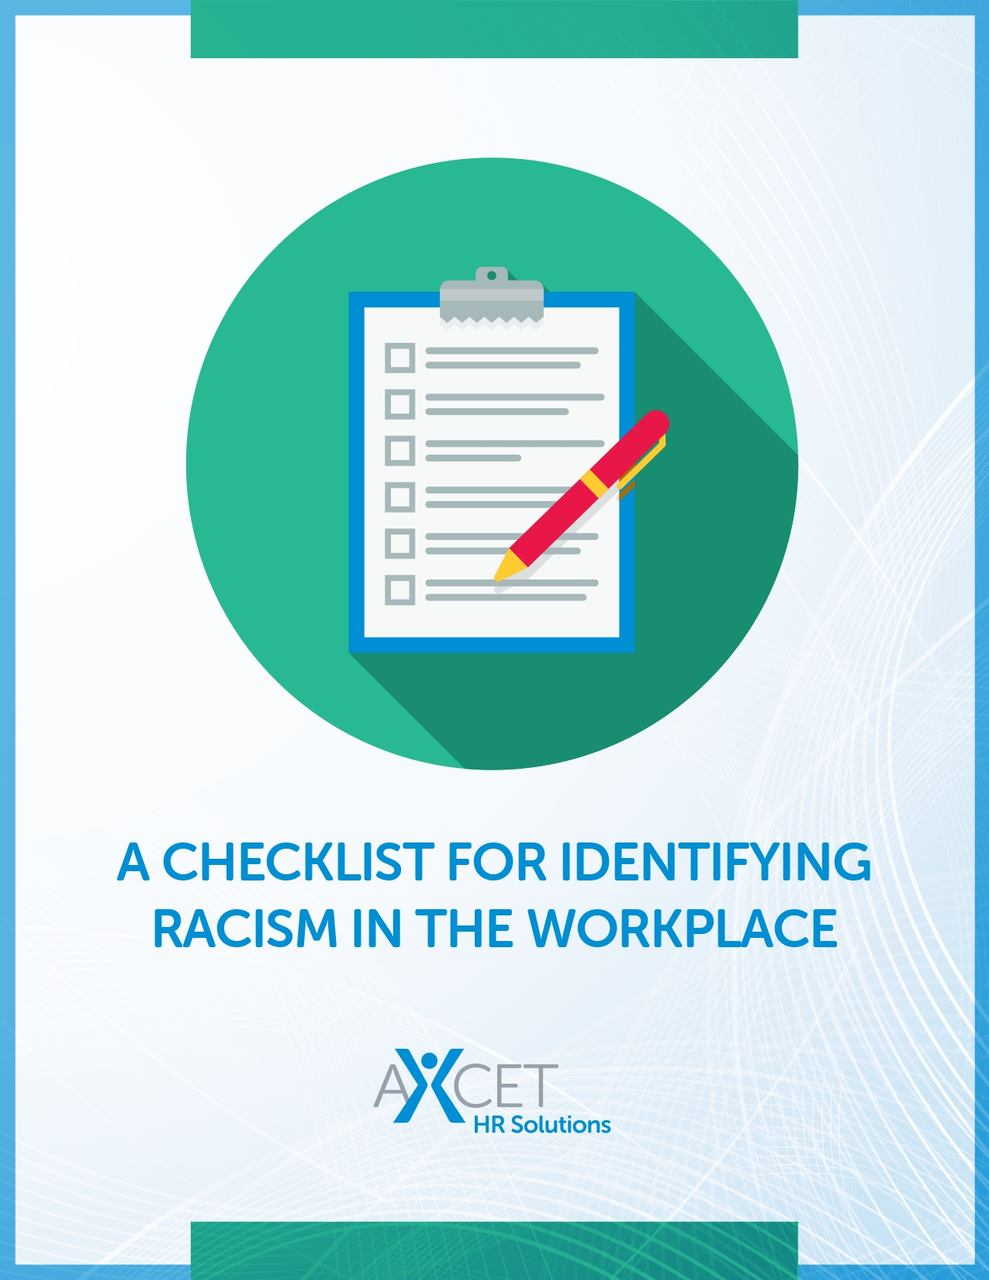 A Checklist for Identifying Racism in the Workplace